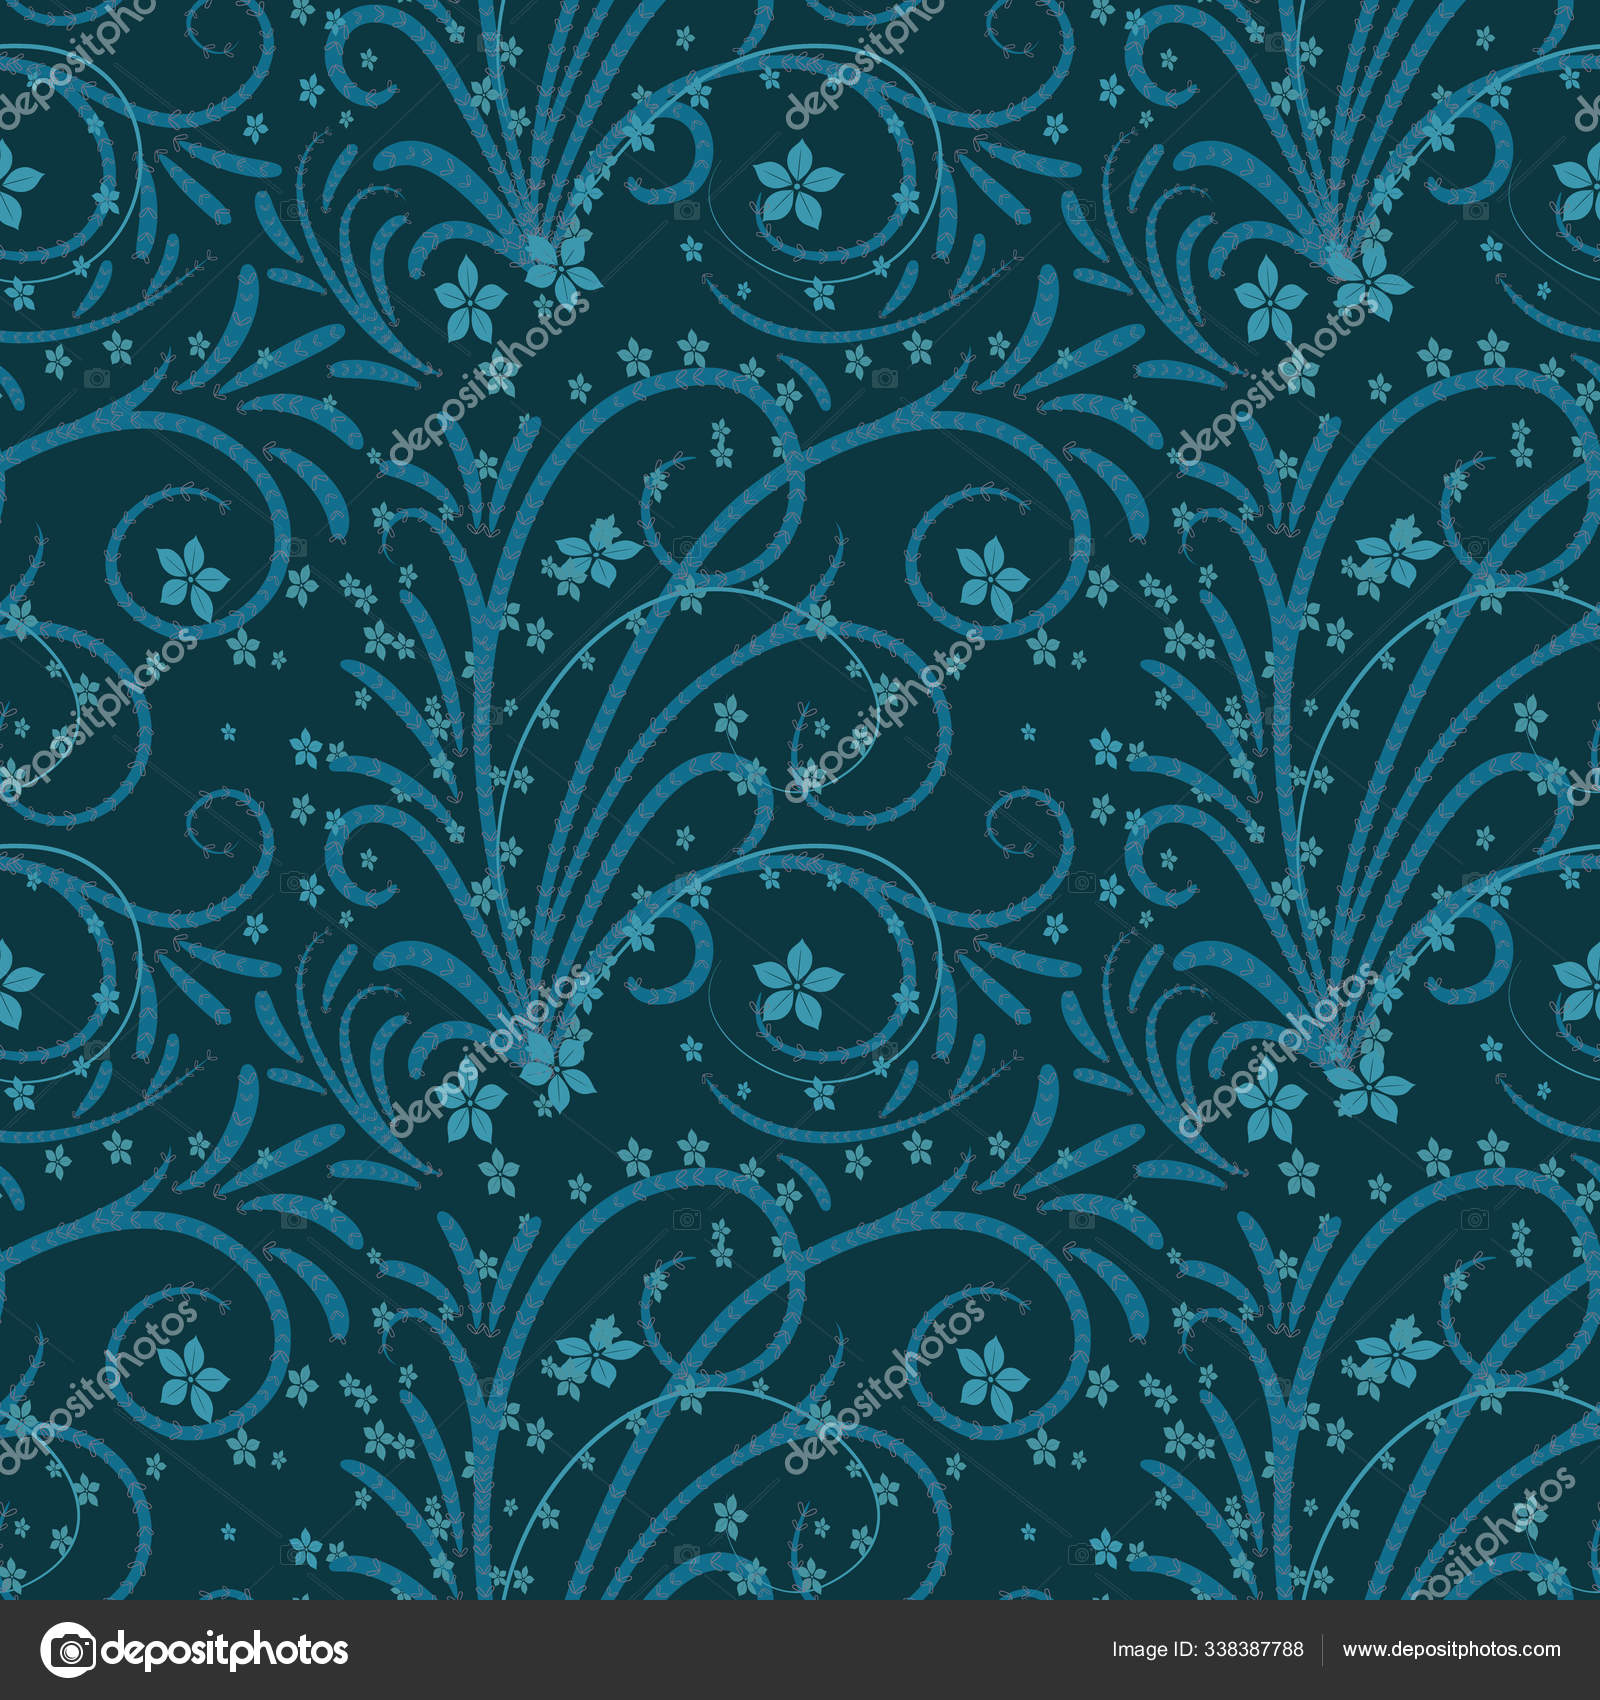 Seamless Pattern With Floral Ornament Twigs And Flowers Of Blue